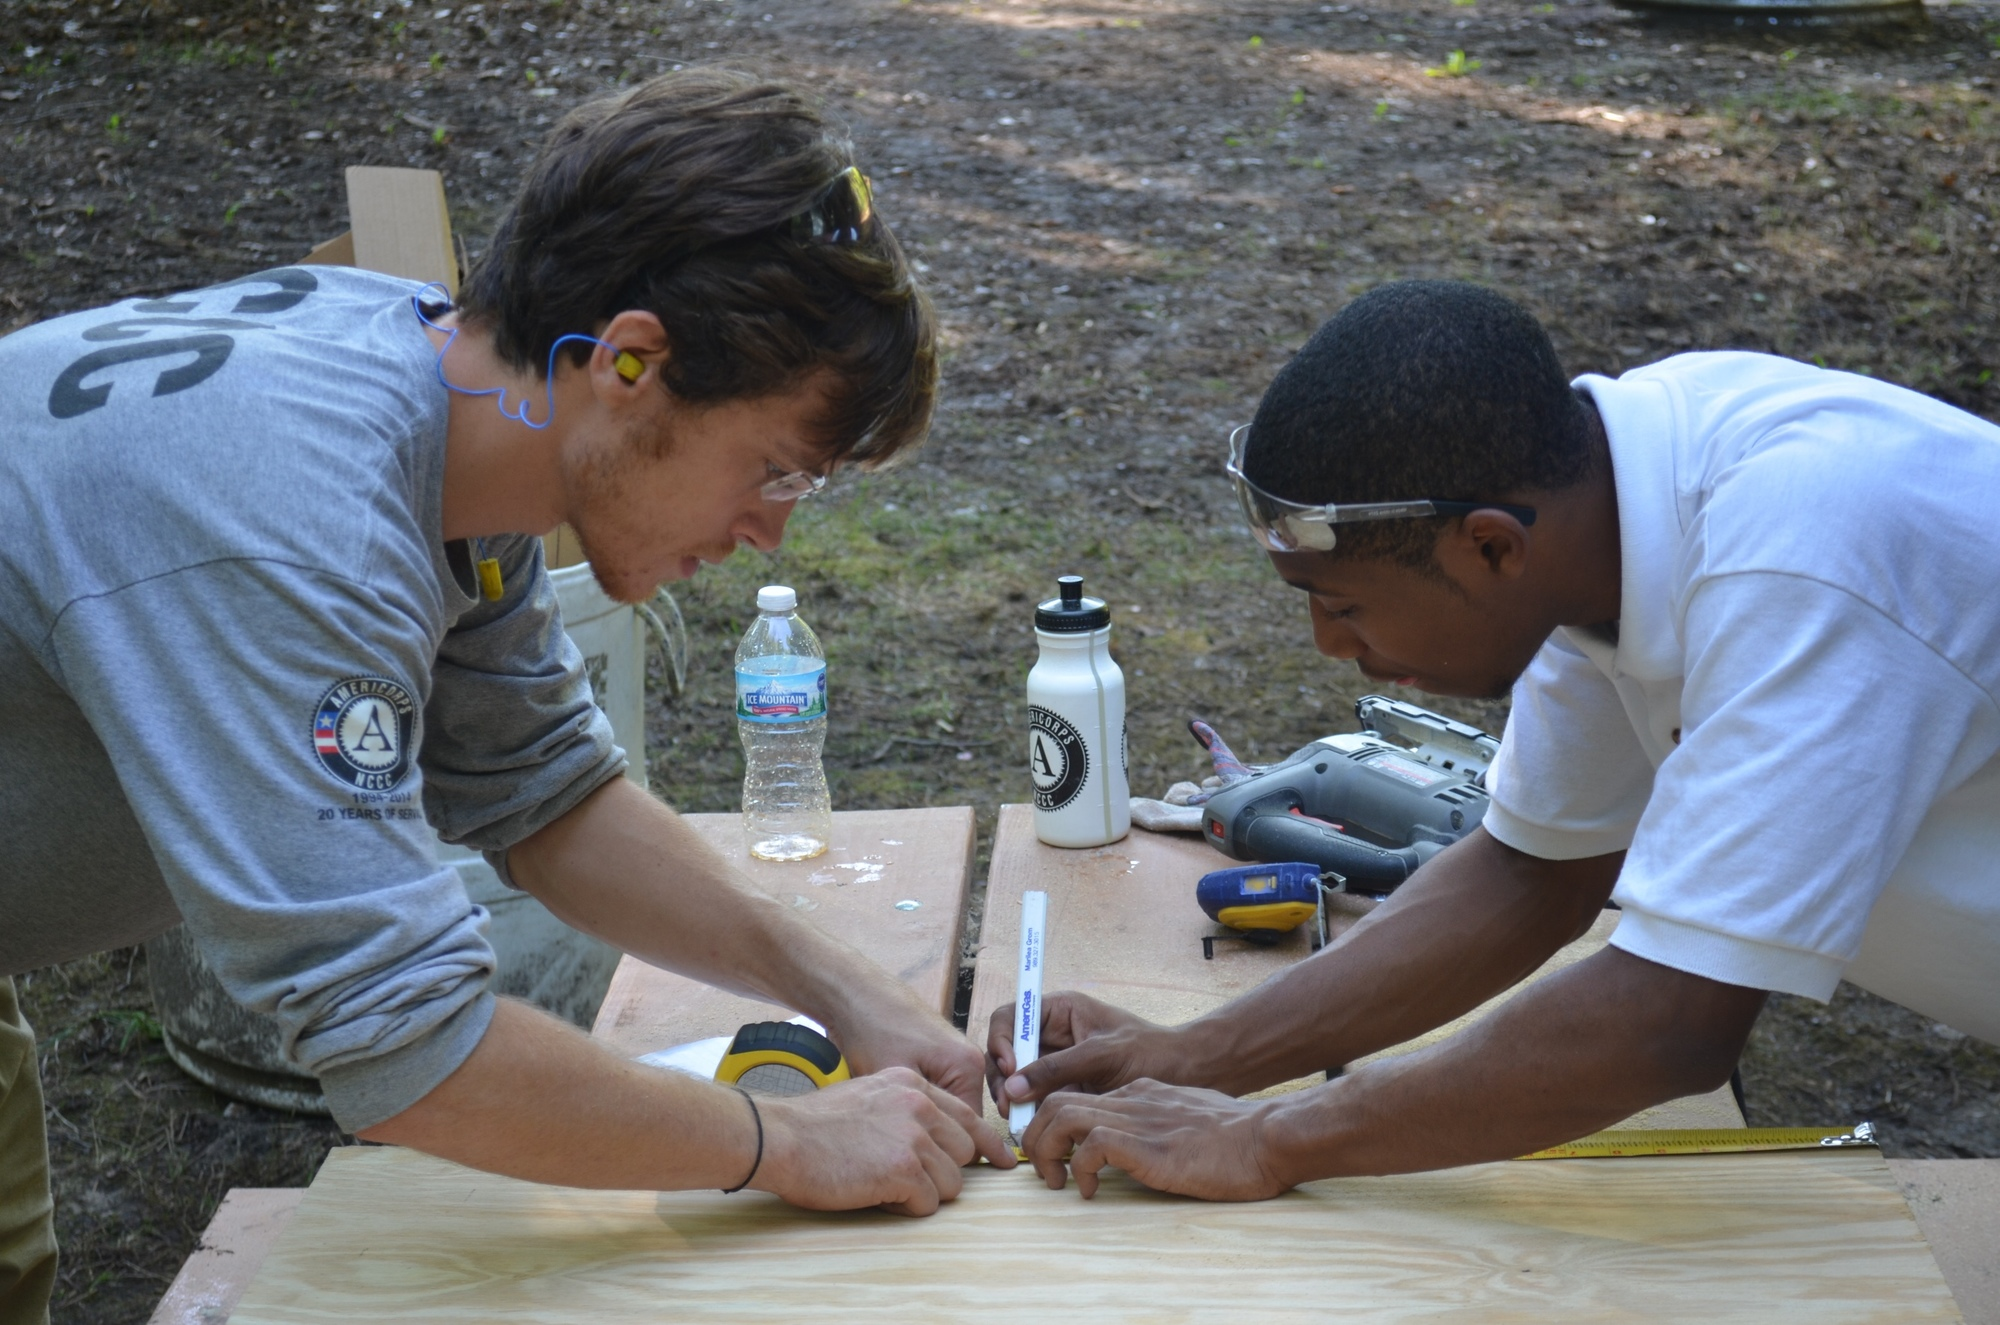 AmeriCorps NCCC members worked with Summer Youth Employment Program participants at Waterloo State Recreation Area to refurbish cabins near Mill Lake.